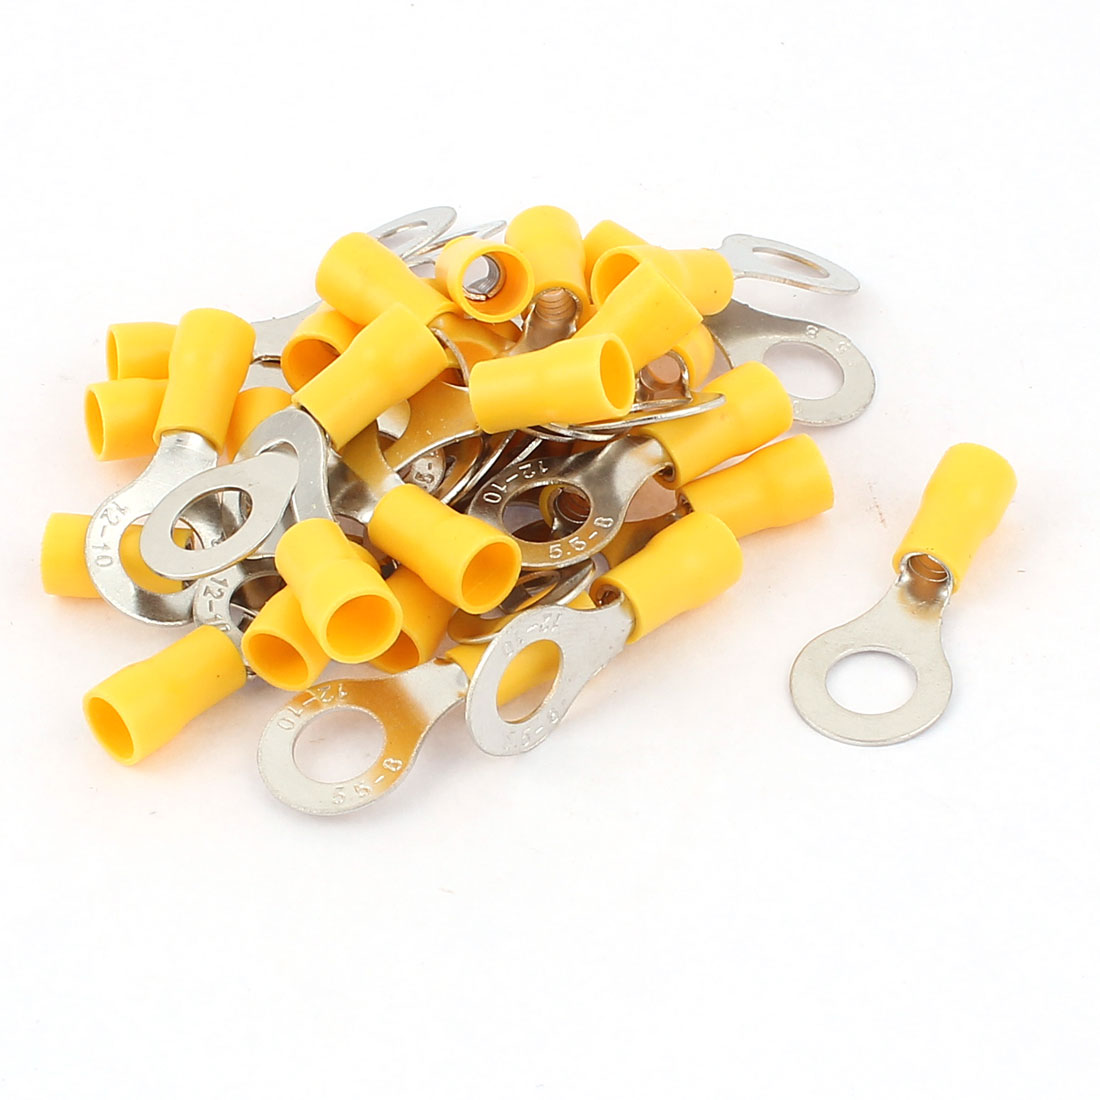 30pcs RV5.5-8 Yellow Plastic Sleeve Pre Insulated Ring Terminals Connector for AWG 12-10 Wire